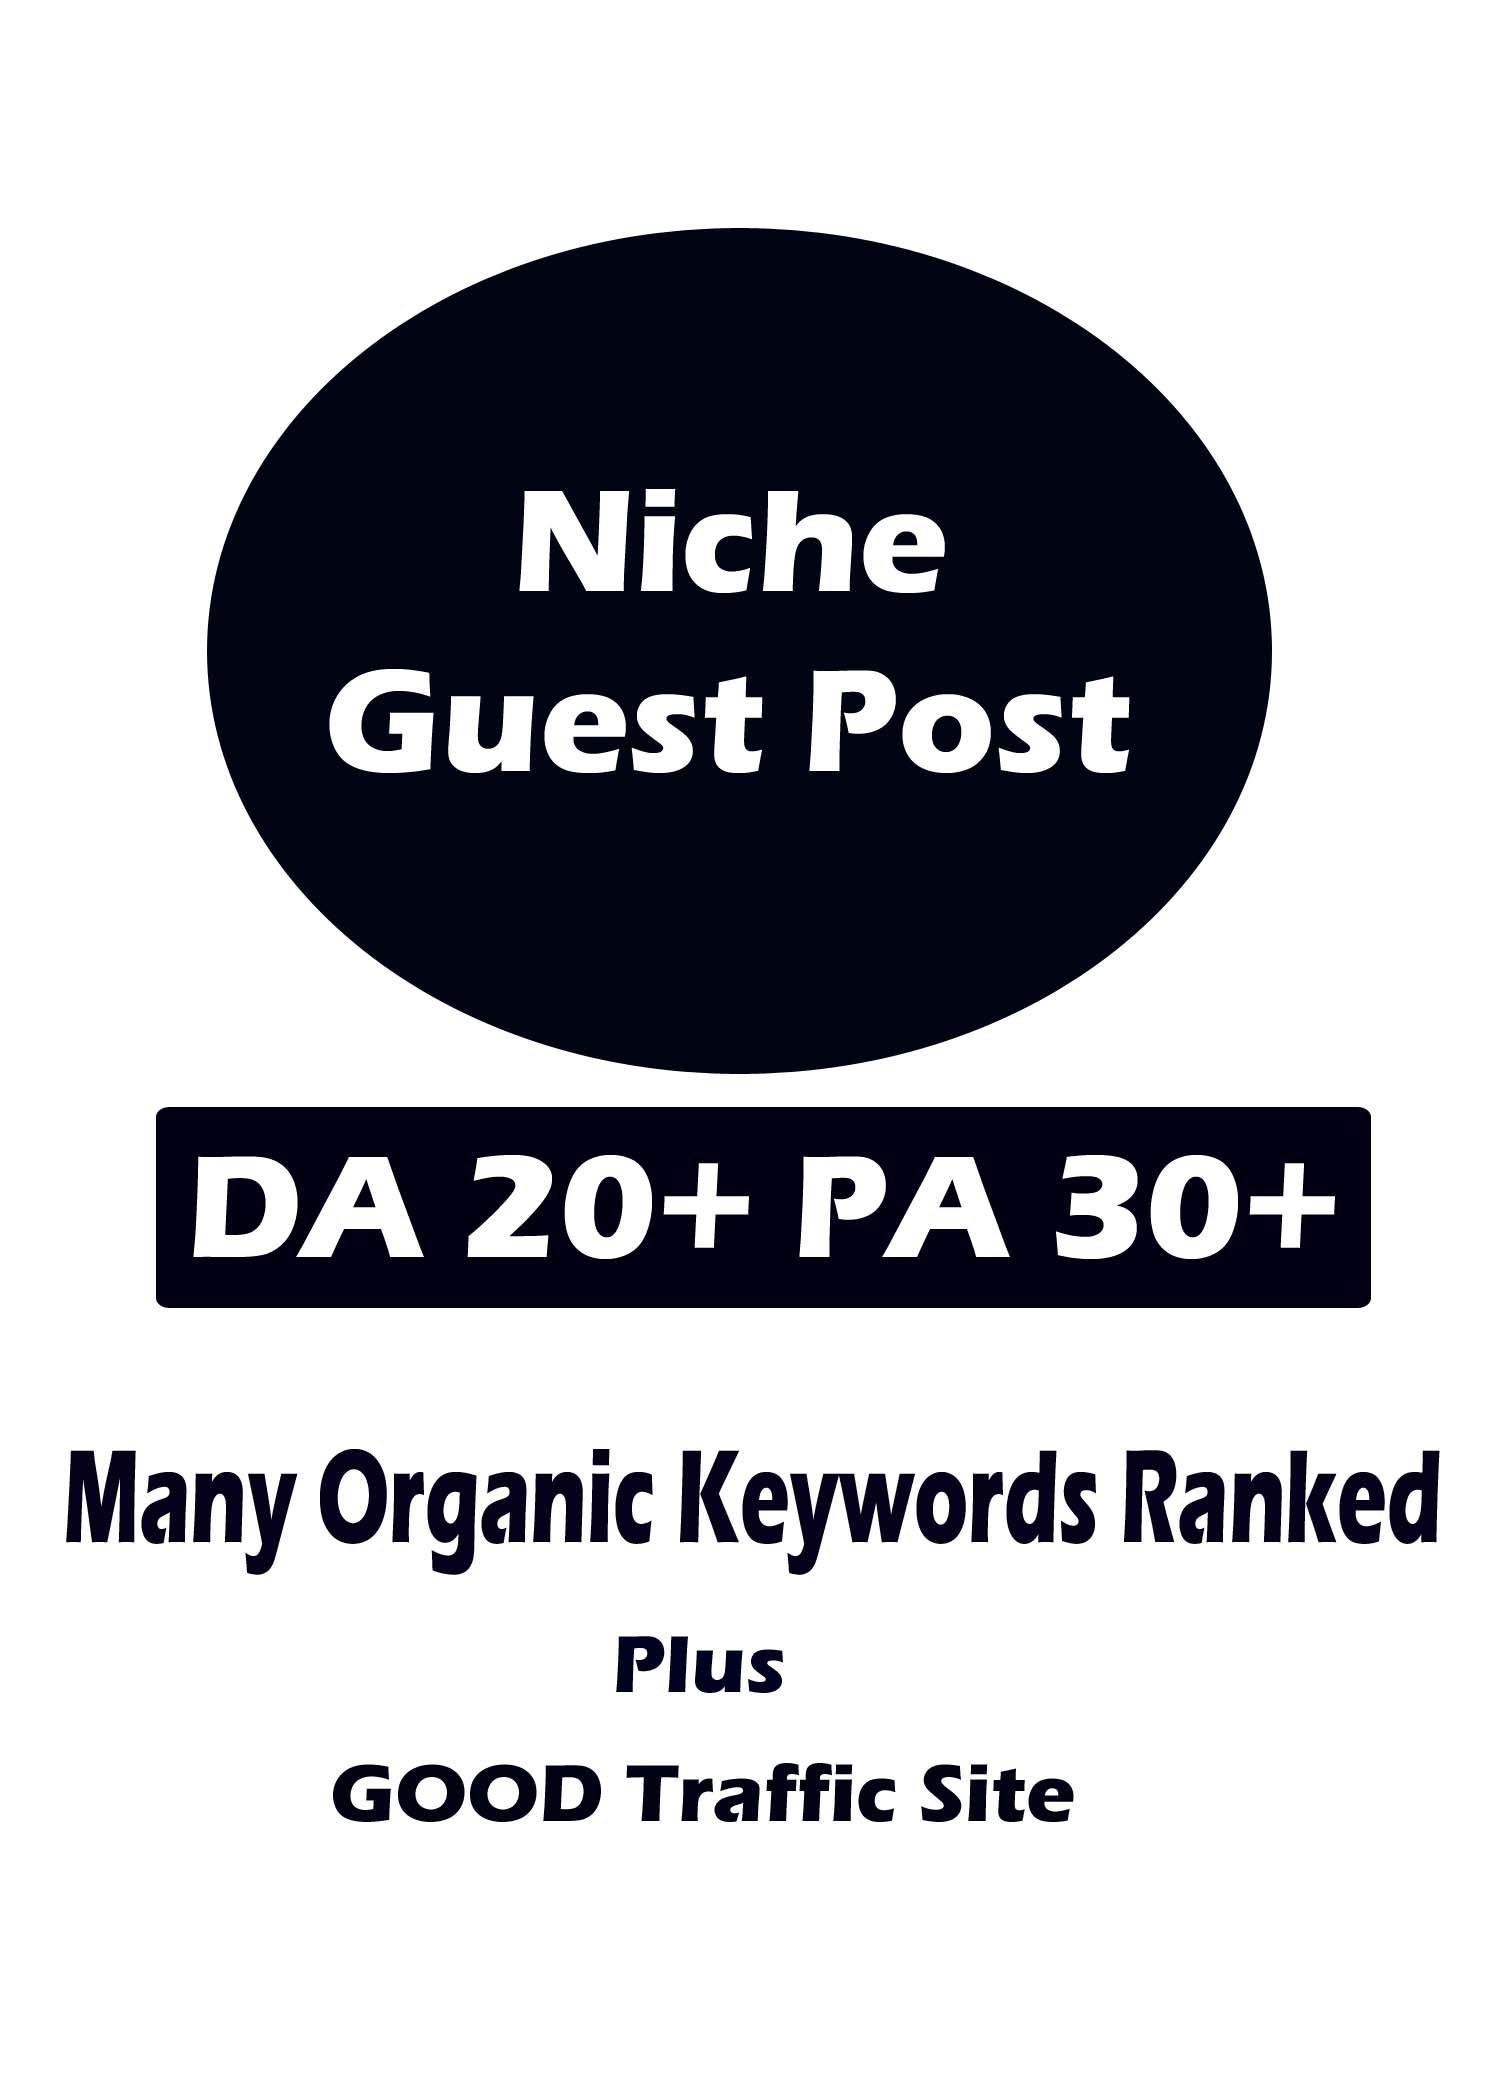 Niche Guest Post on DA 20 plus PA 30 plus sites